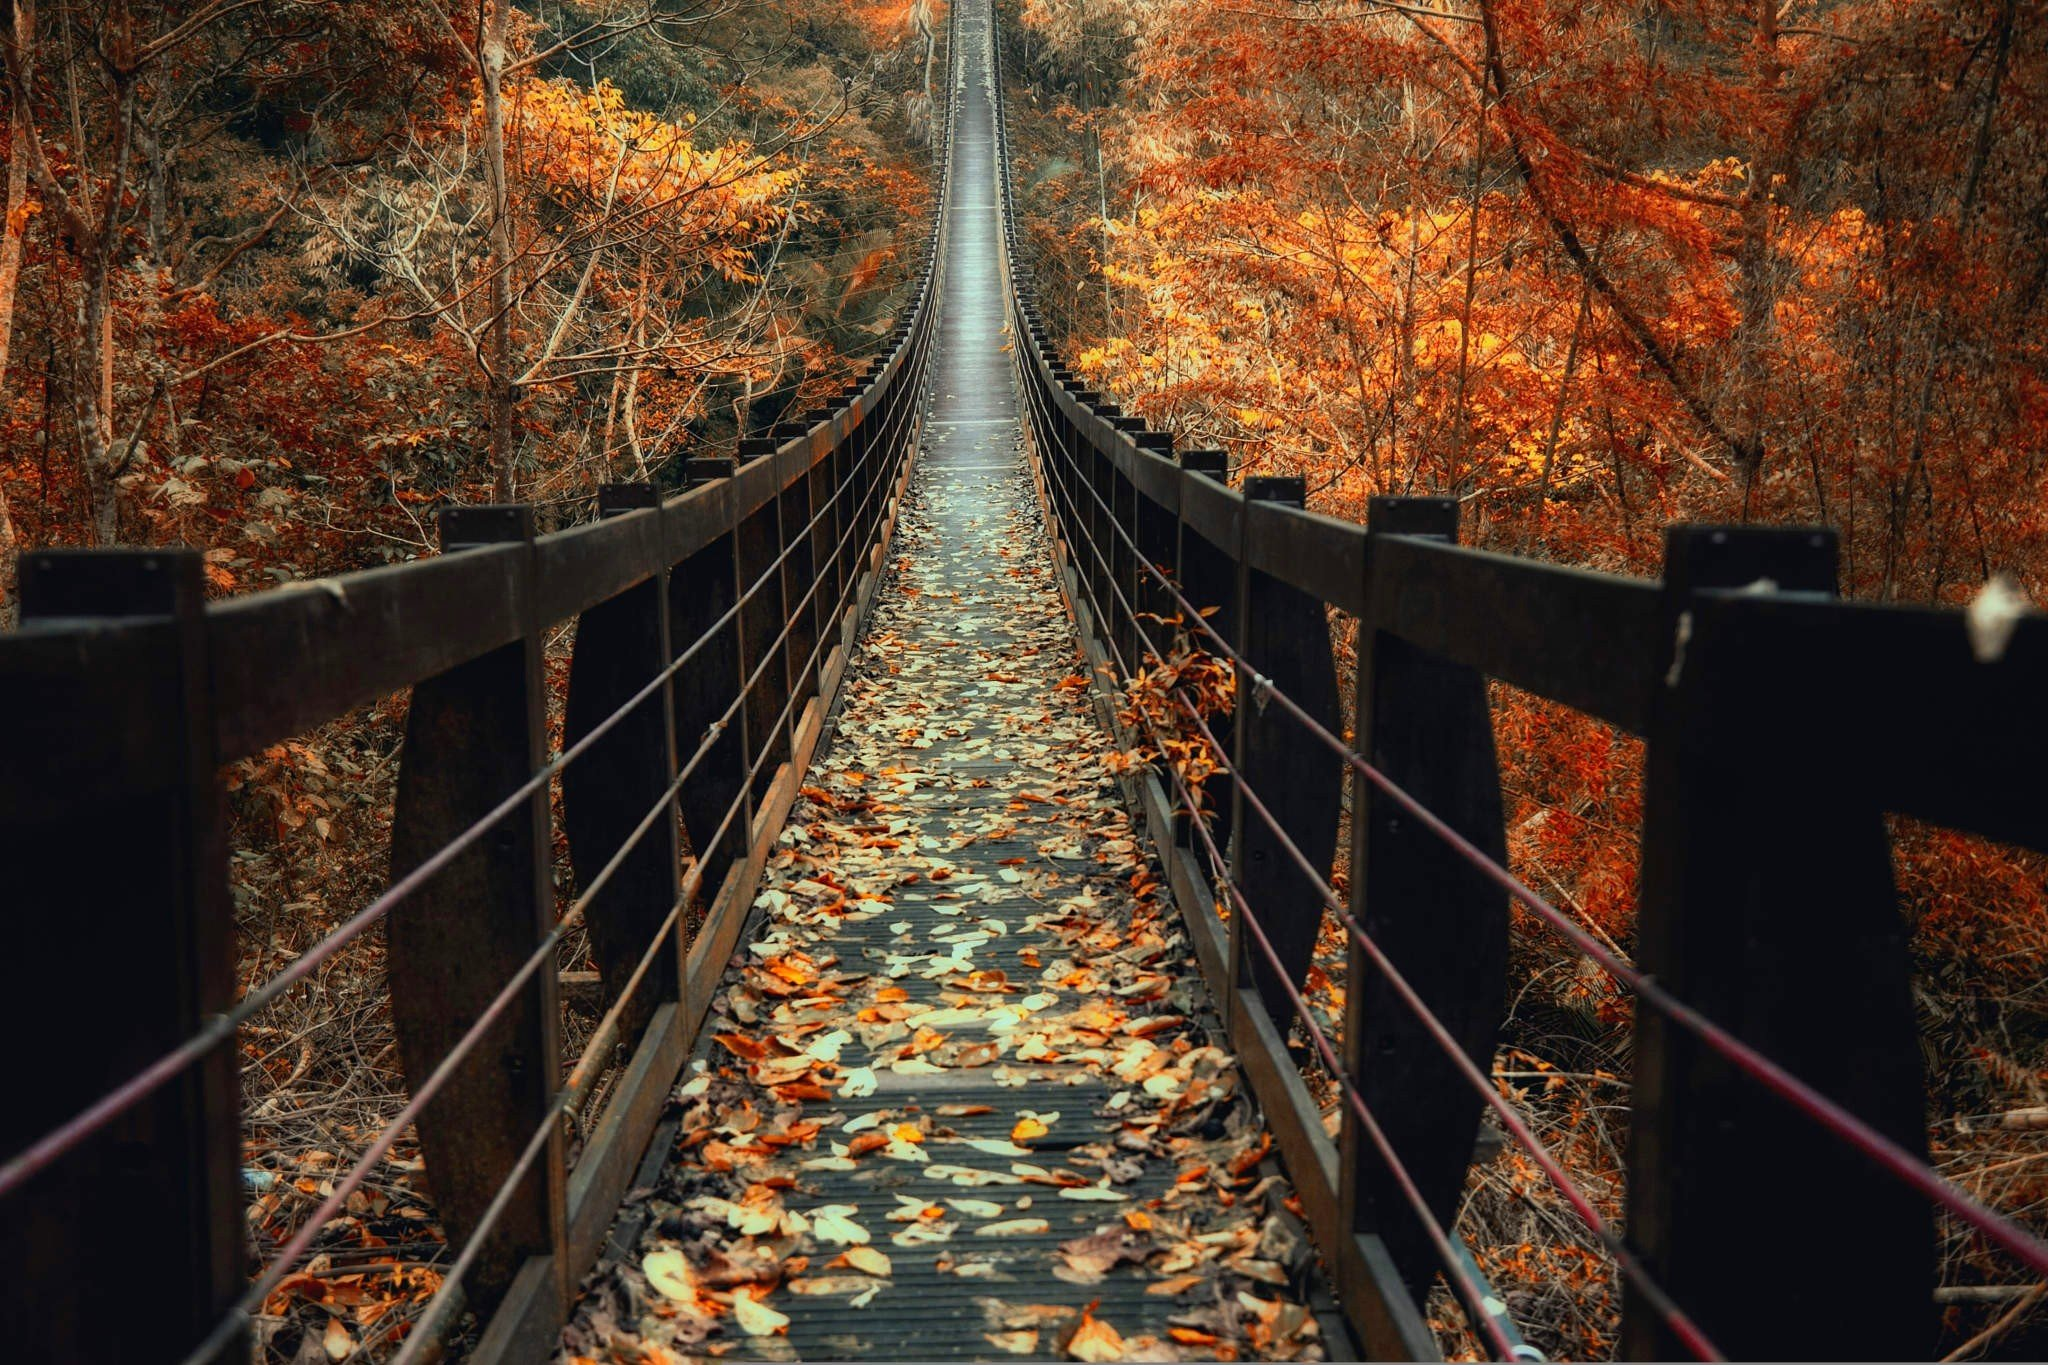 Full Screen Desktop Fall Leaves Wallpaper Nature Photography Landscape Fall Bridge Wooden